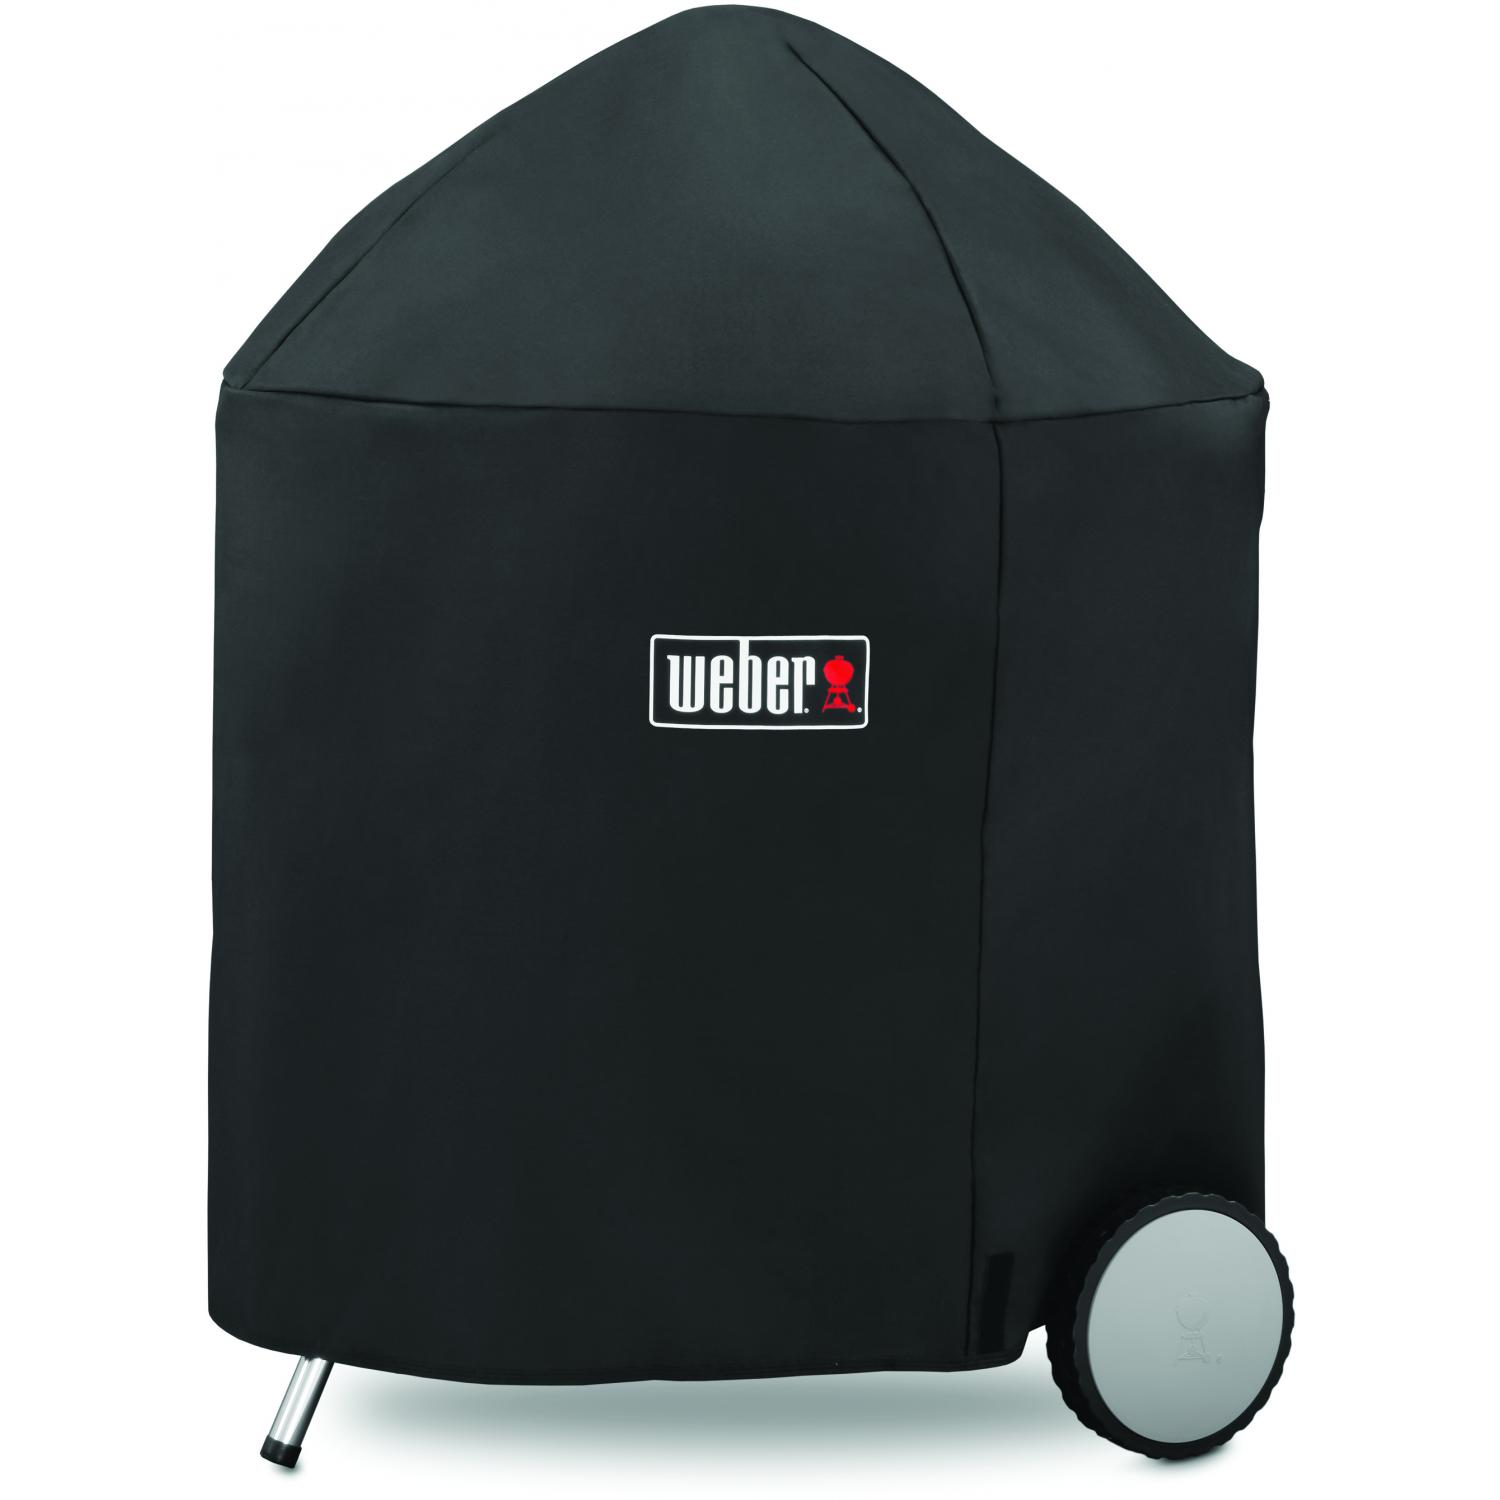 Weber 7153 Premium Grill Cover With Storage Bag For 26 Inch Original Kettle Premium Charcoal Grills